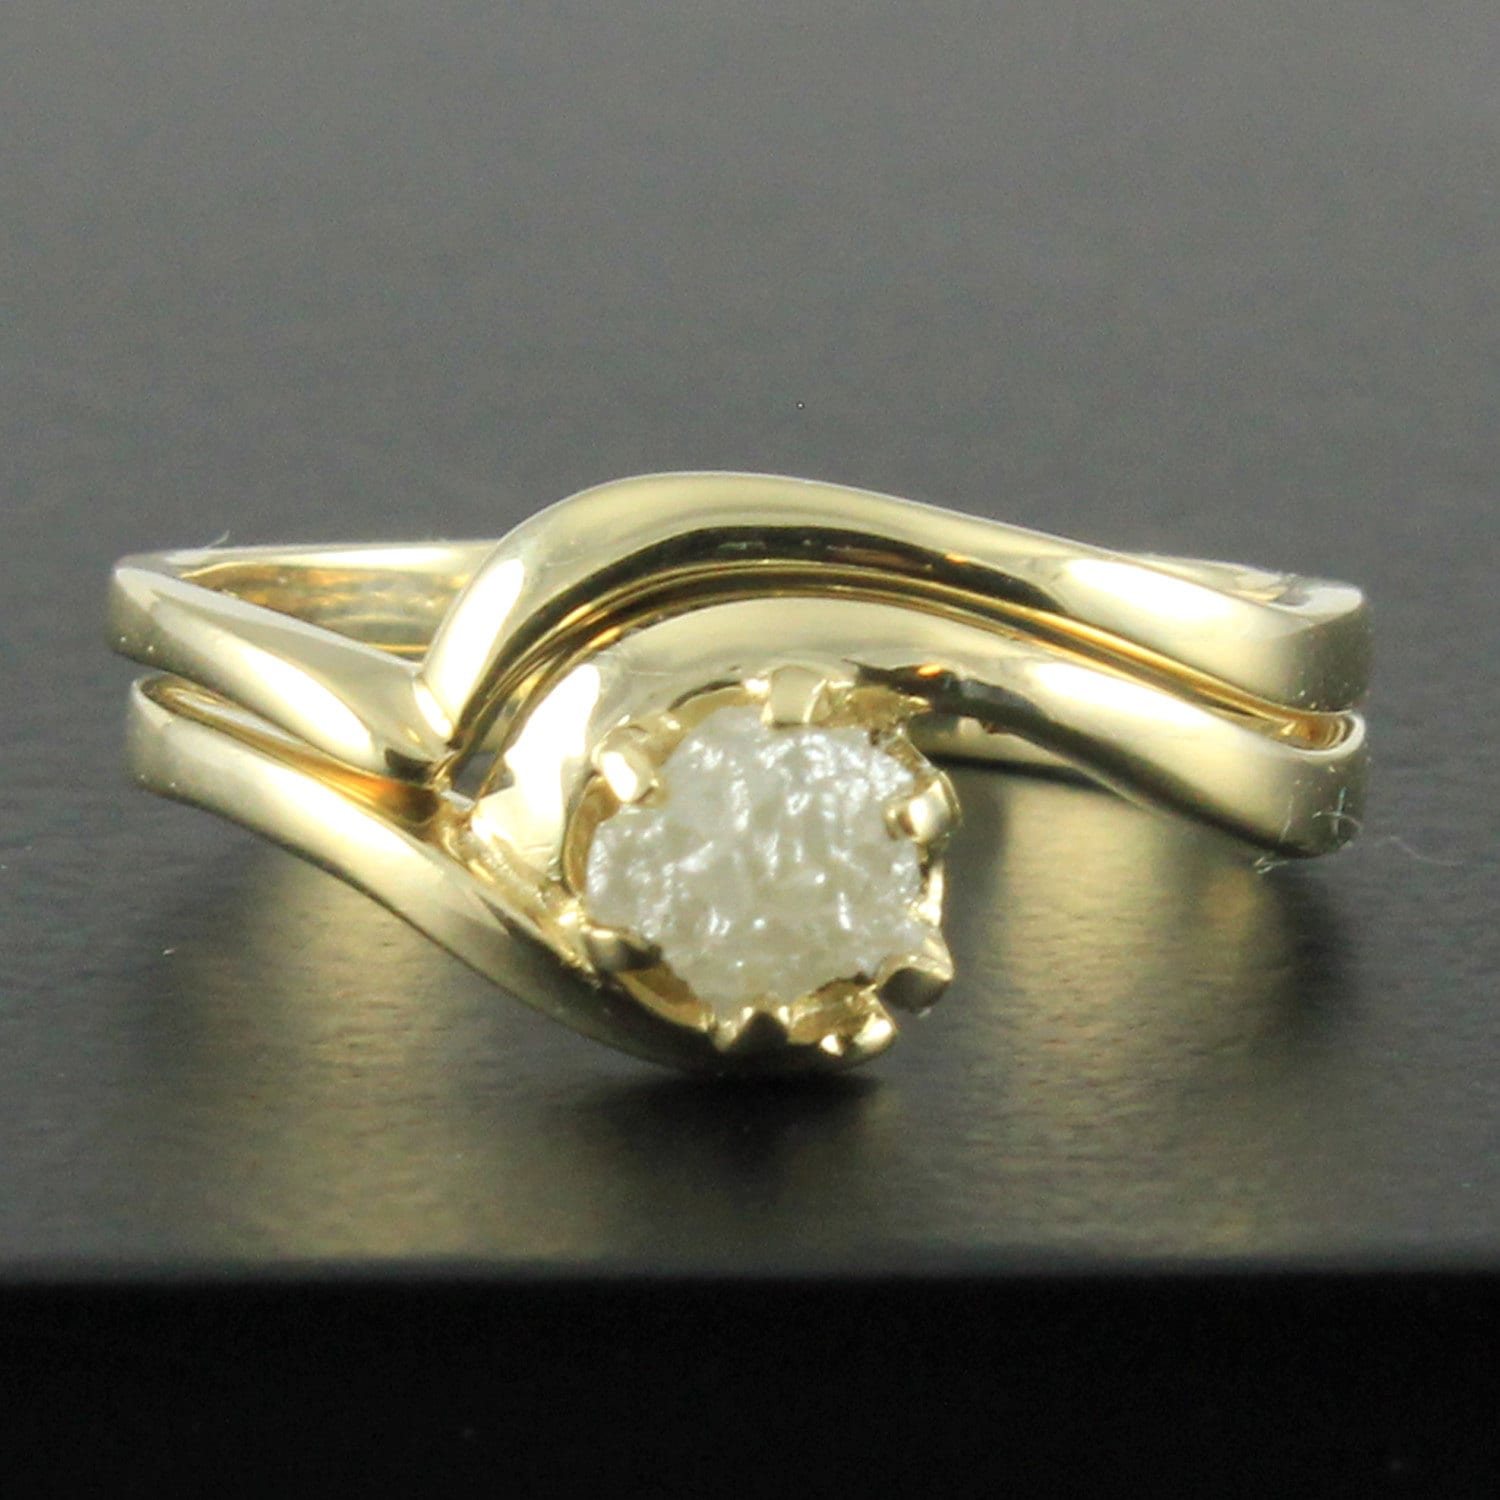 caroline engagement rings original raw ring by rough diamond orange carolinebrook uncut product